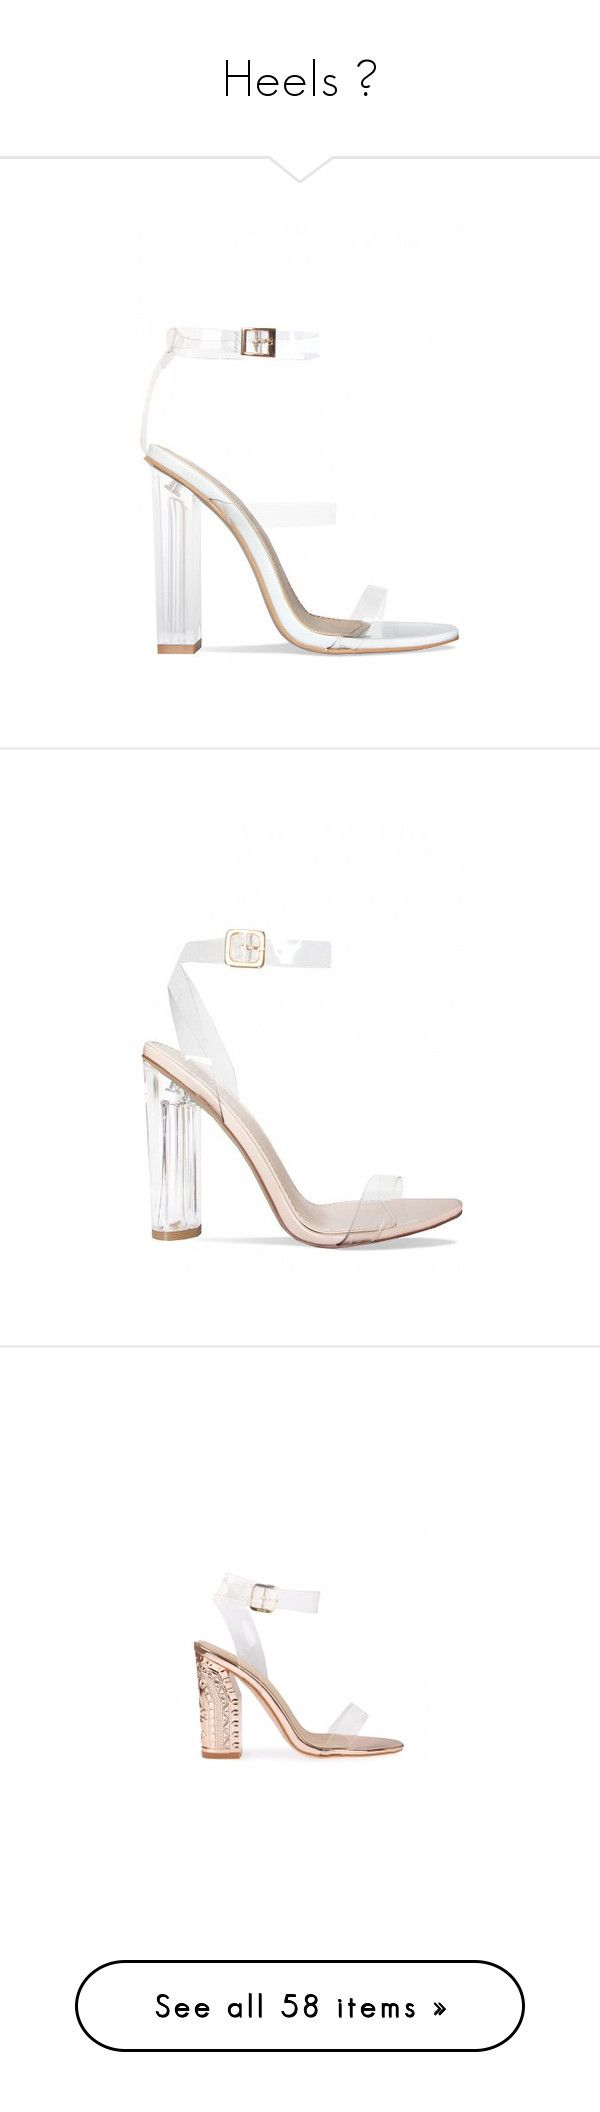 """Heels 👠"" by champagnayegang ❤ liked on Polyvore featuring shoes, pumps, white court shoes, white pumps, white shoes, heels, sandals, strap pumps, strappy shoes and nude strappy shoes"